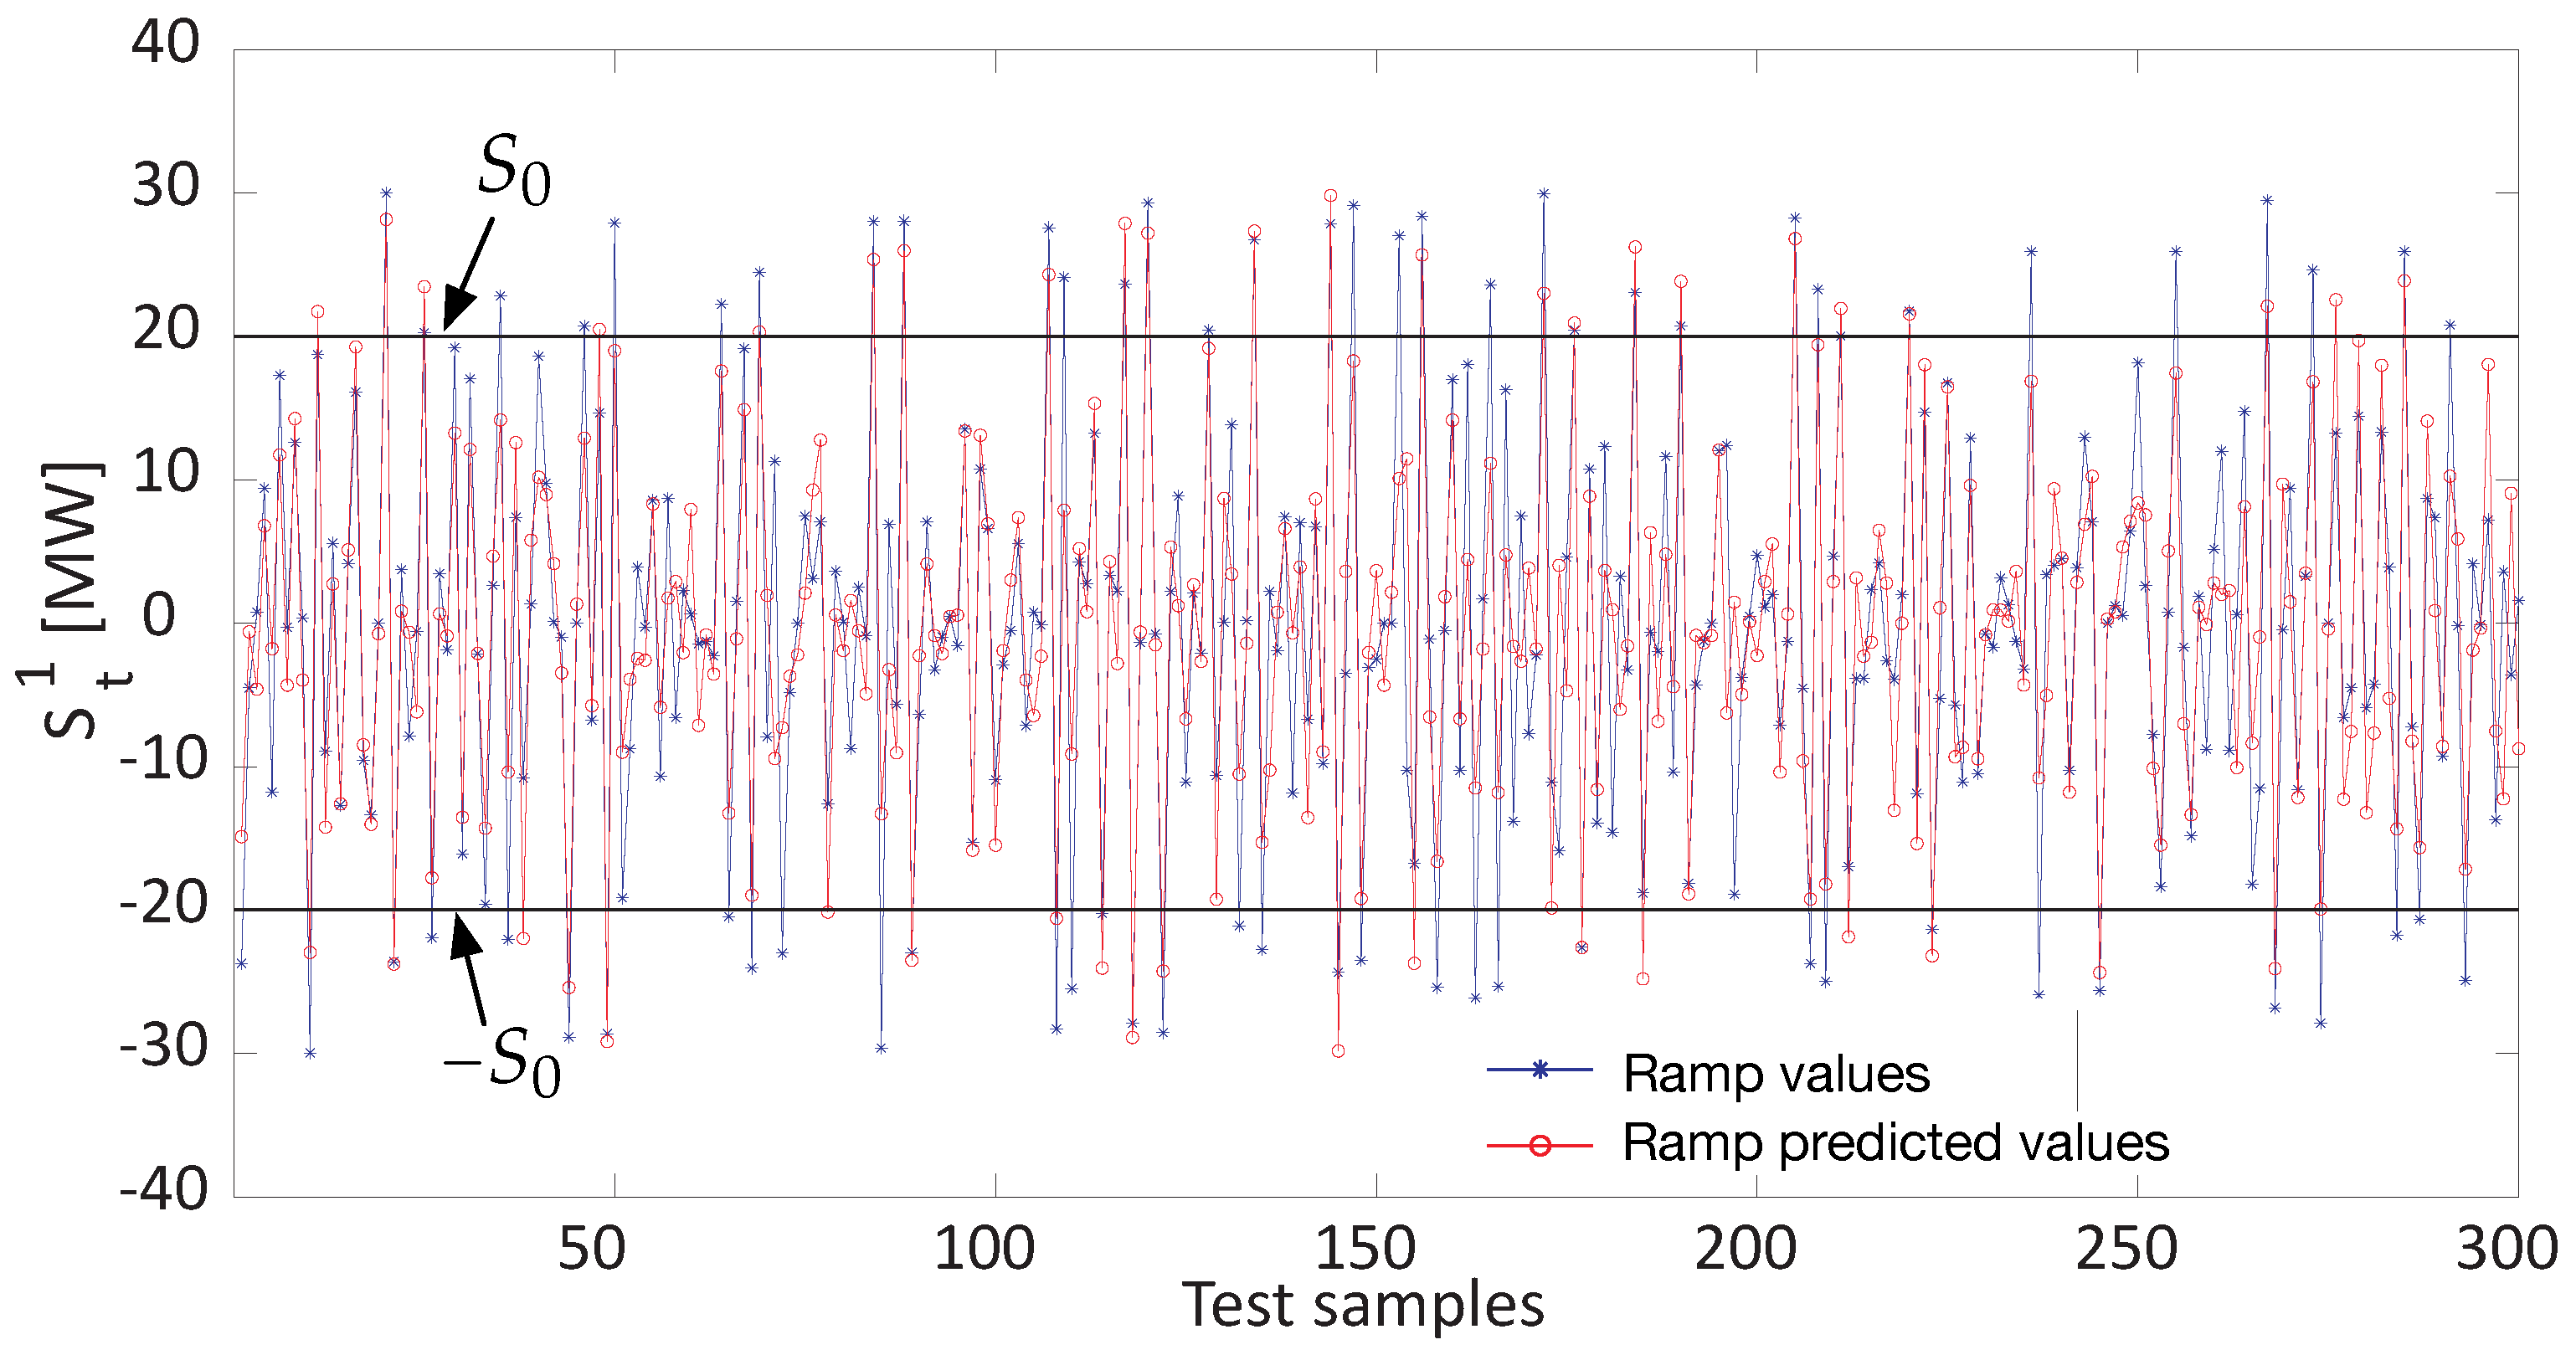 Data Mining for Prediction of Wind Farm Power Ramp Rates